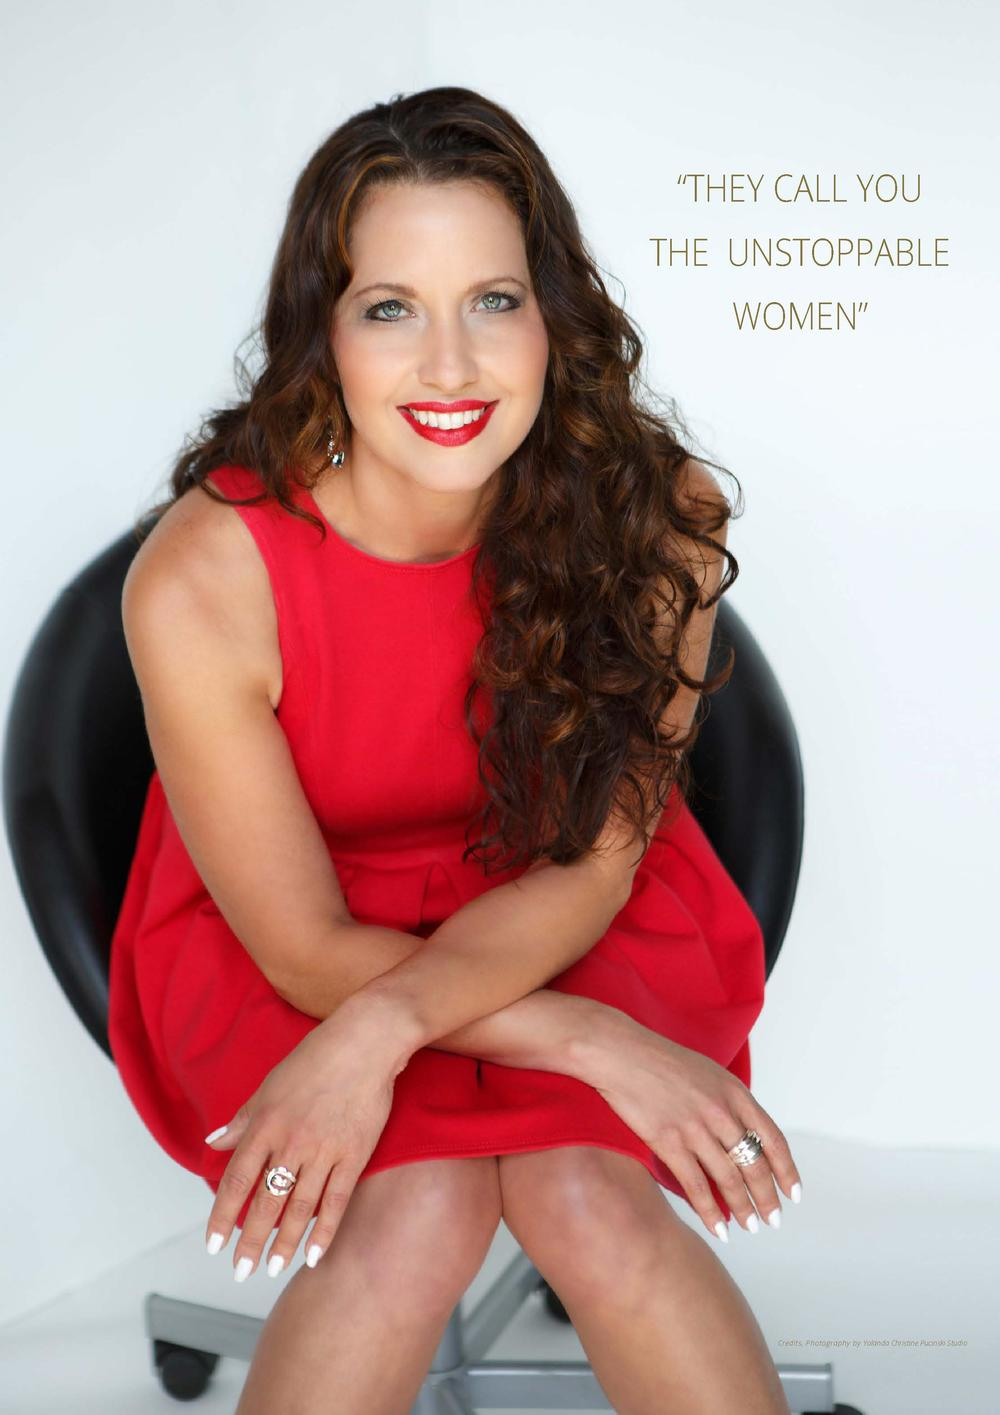 THEY CALL YOU THE UNSTOPPABLE WOMEN     Credits, Photography by Yolanda Christine Pucinski Studio